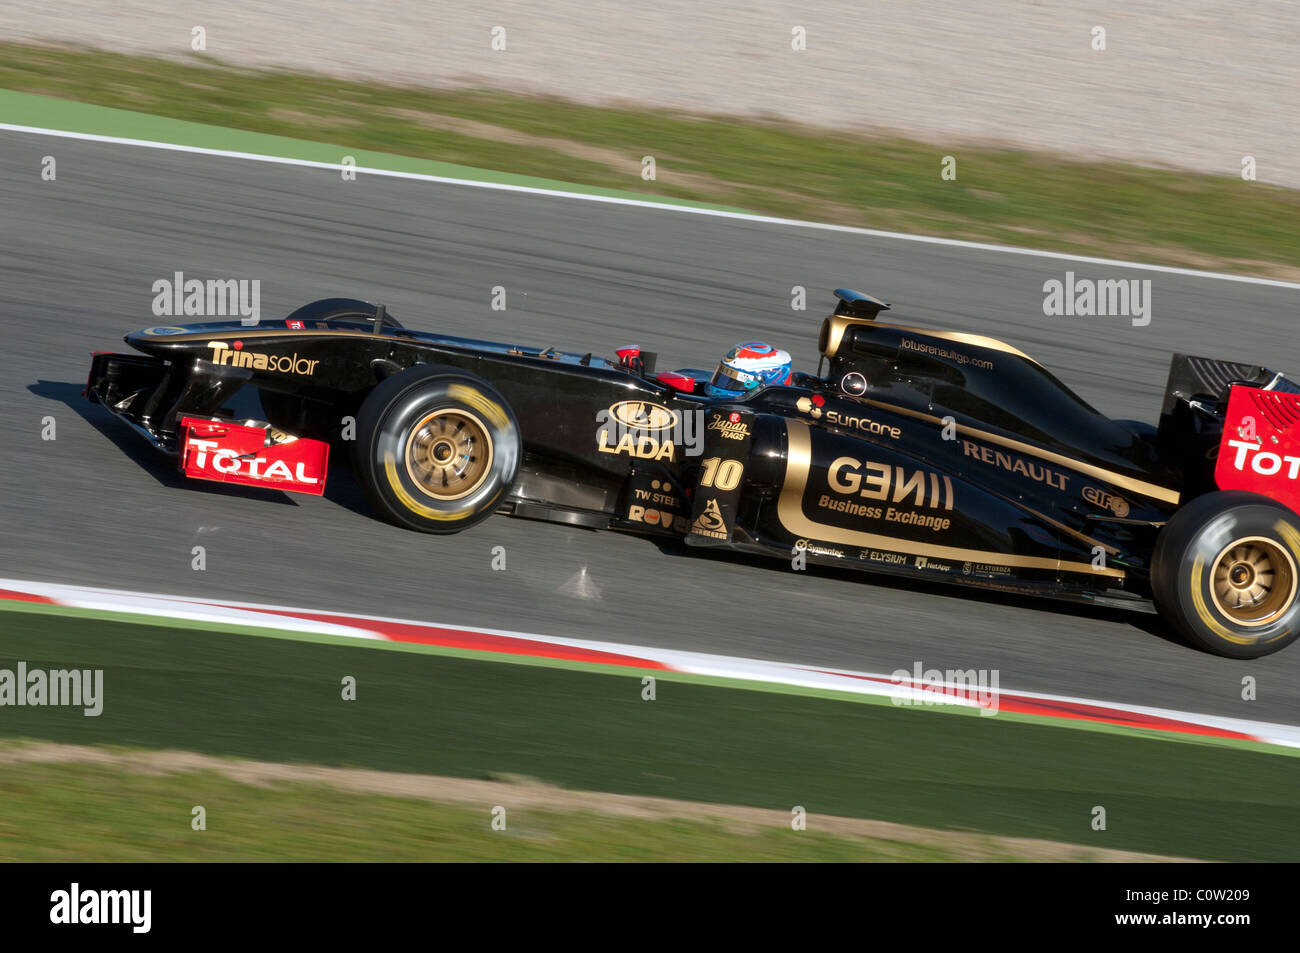 Vitaly Petrov drives for the Lotus Renault GP team during testing at the Circuit de Catalunya February 18, 2011 - Stock Image